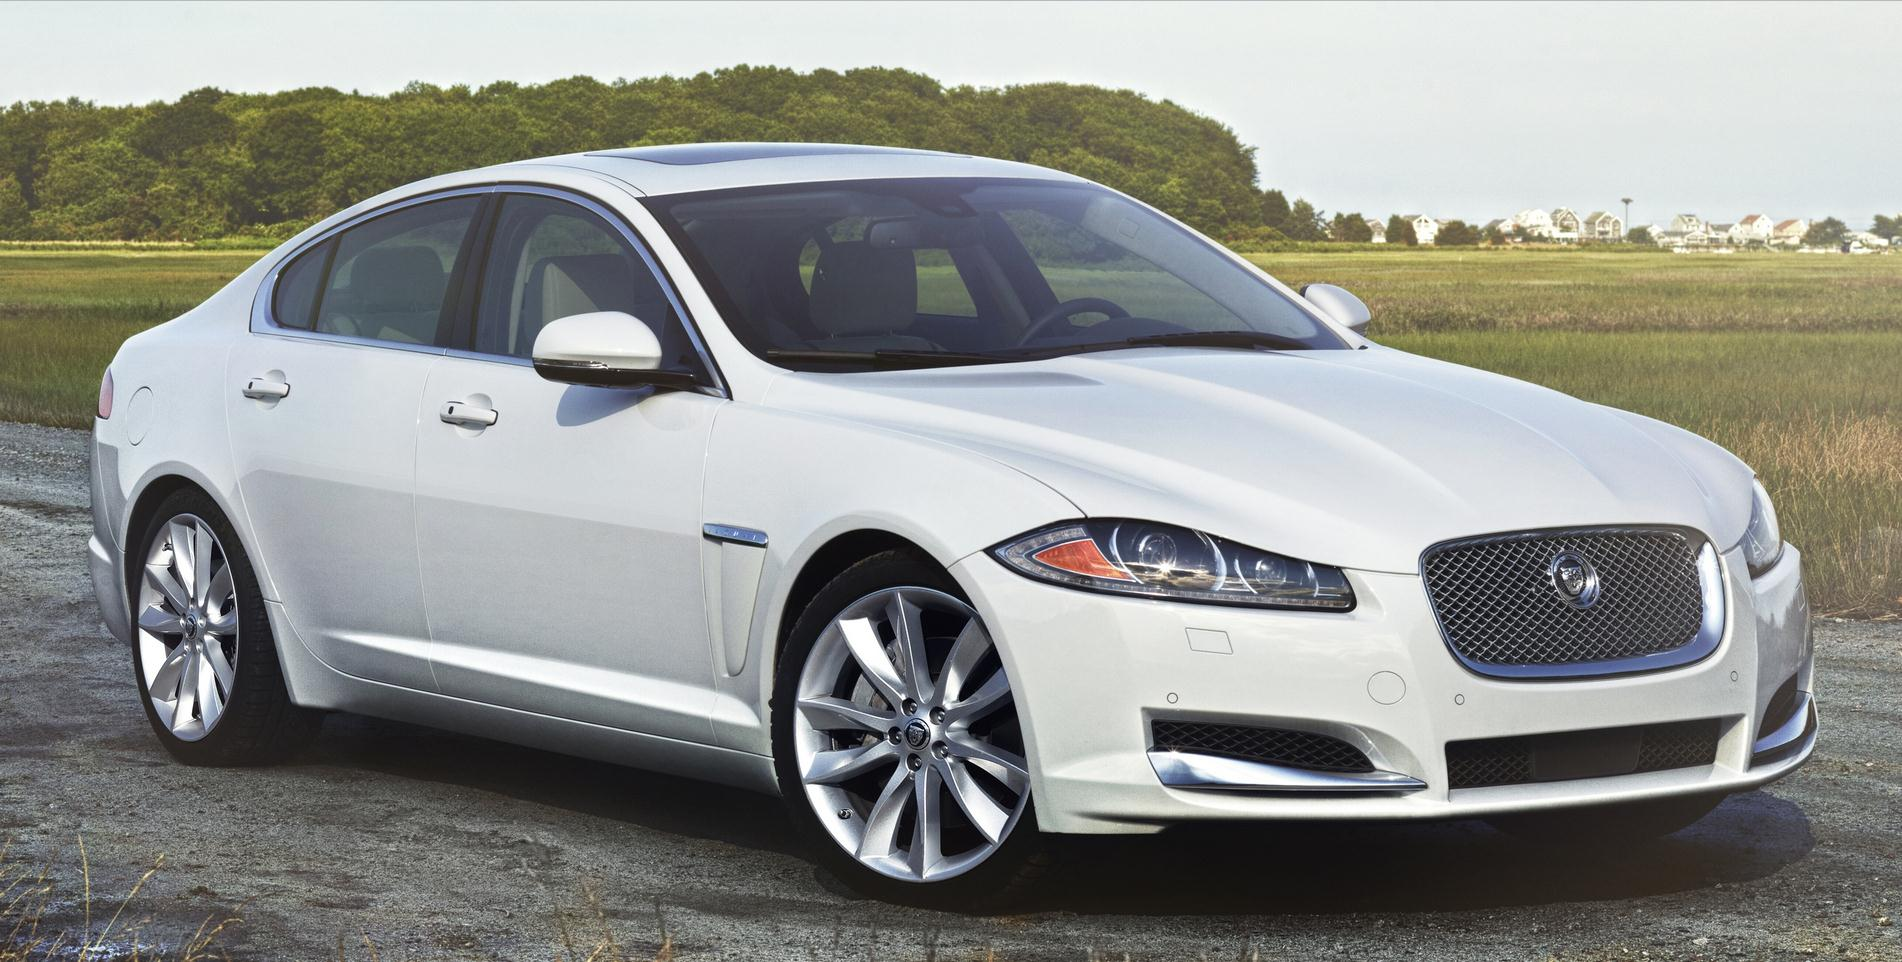 Jaguar XF Luxury #15